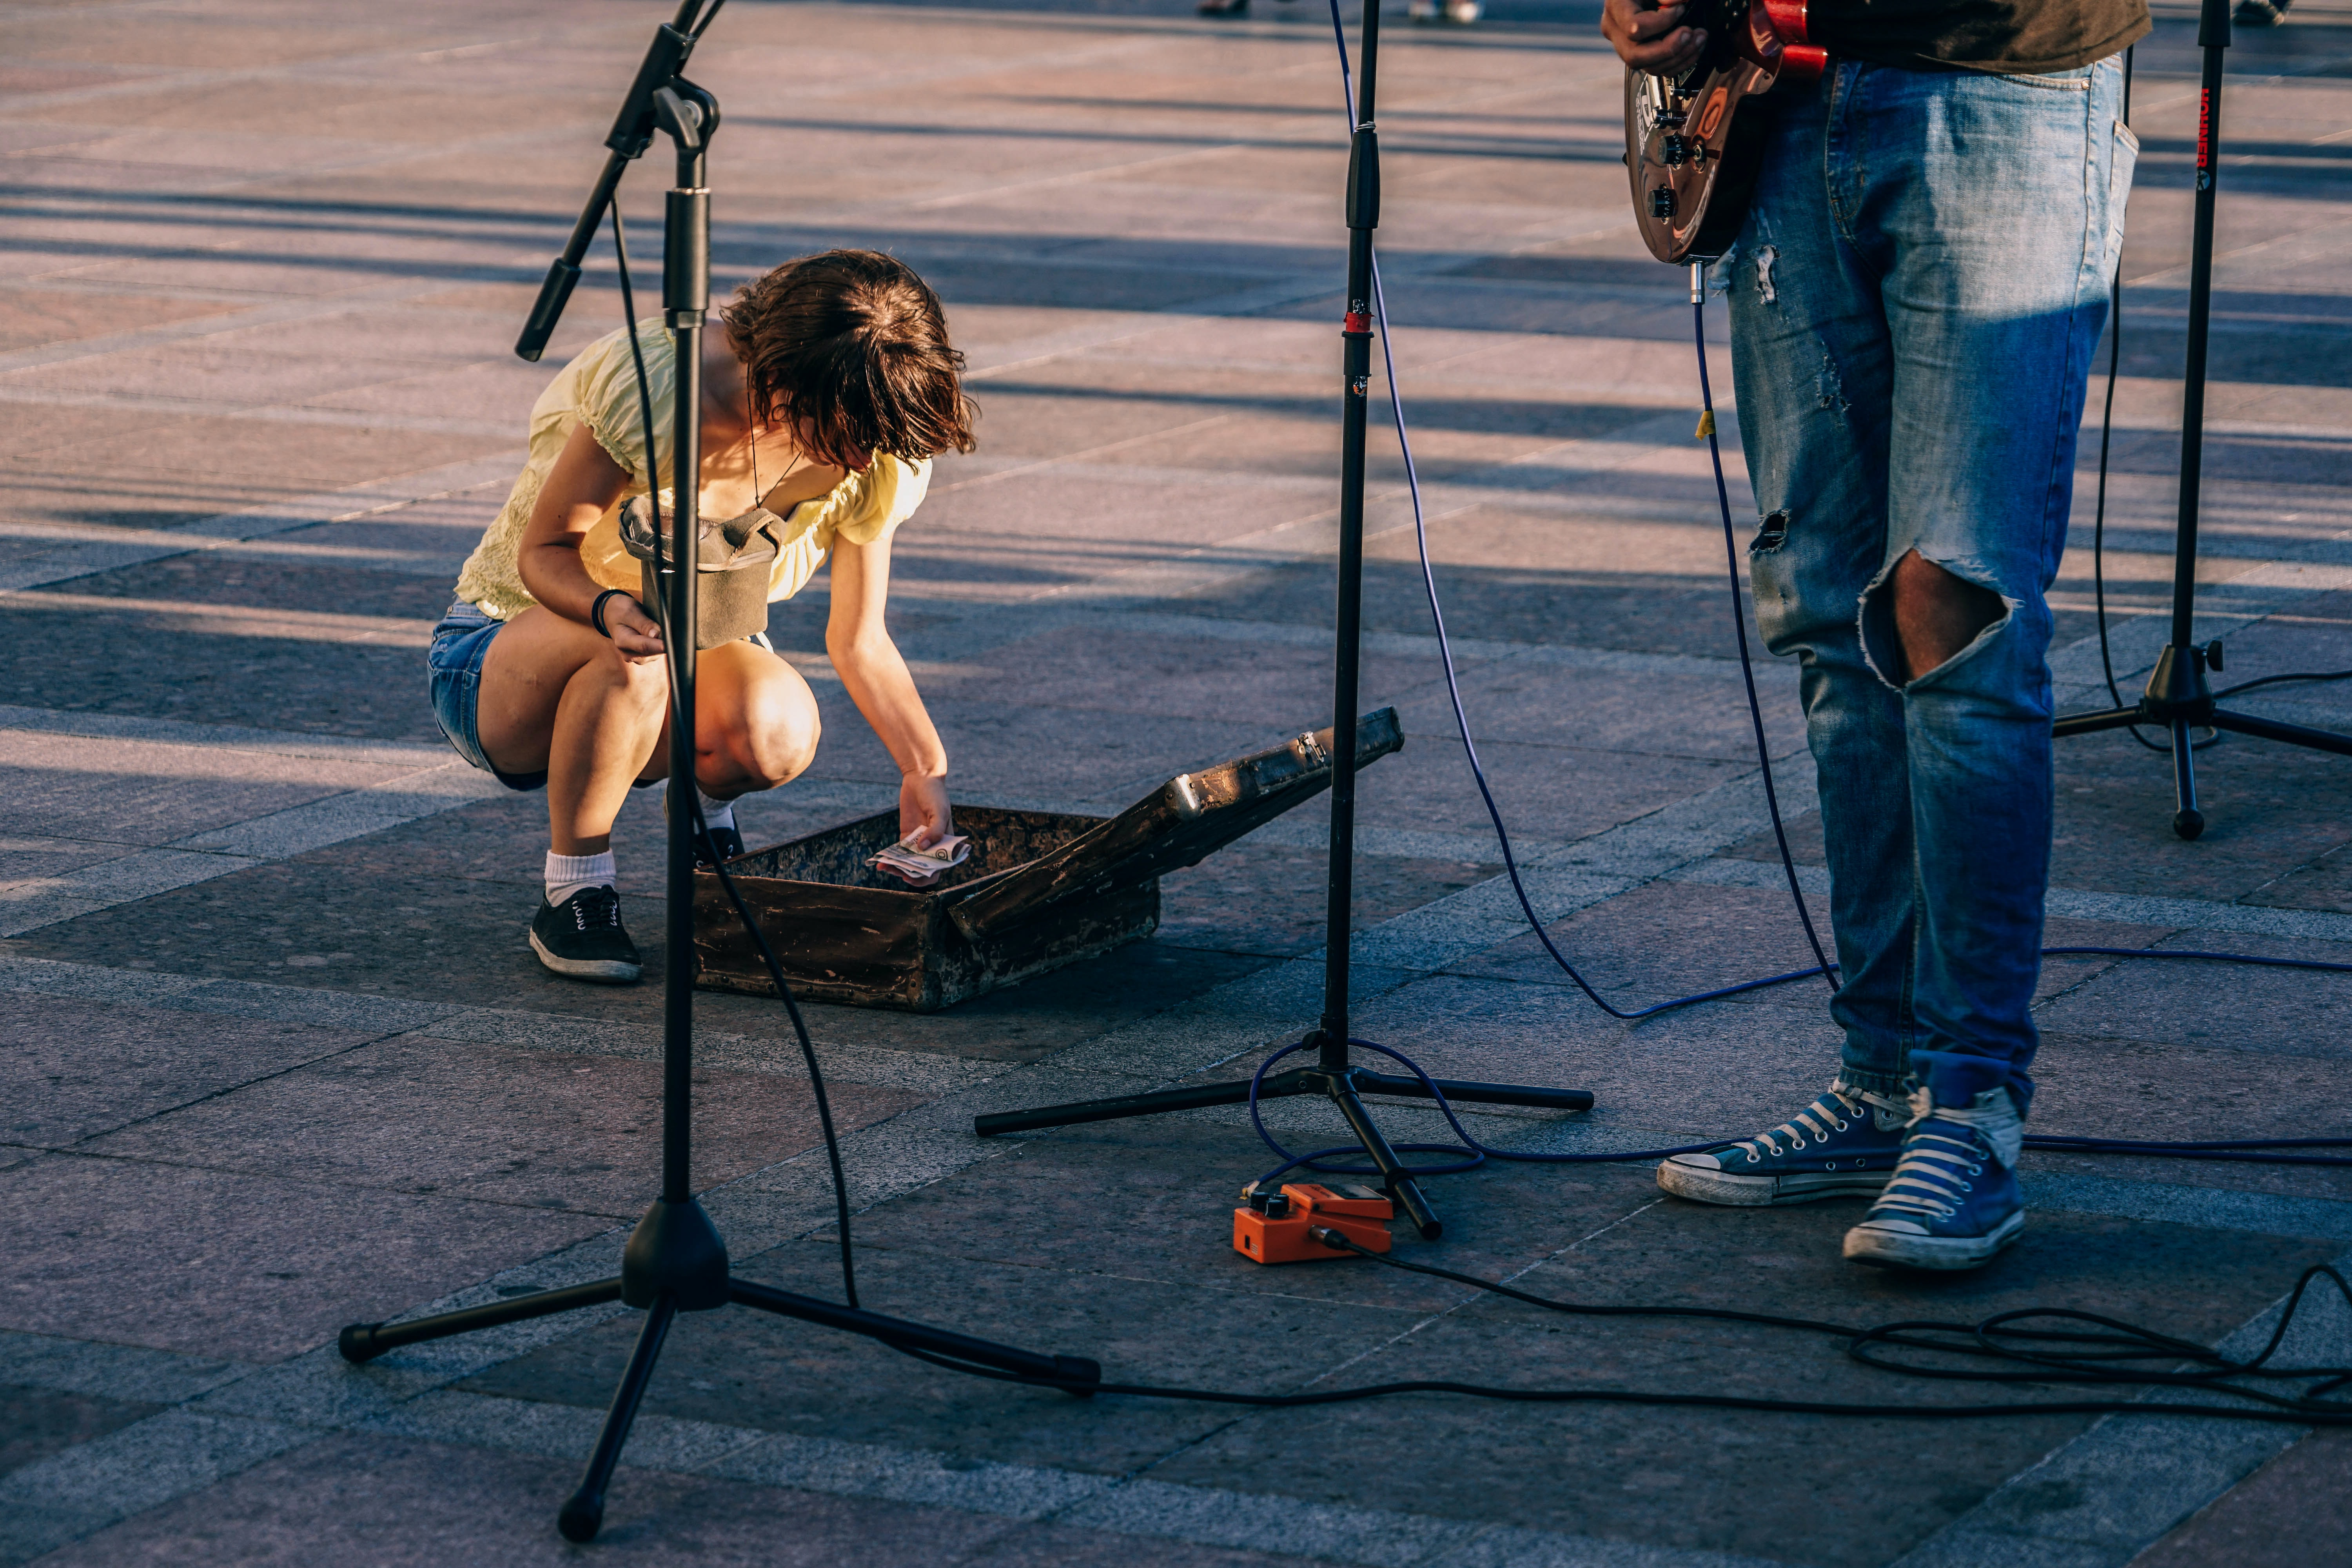 woman kneeling in front of person holding guitar